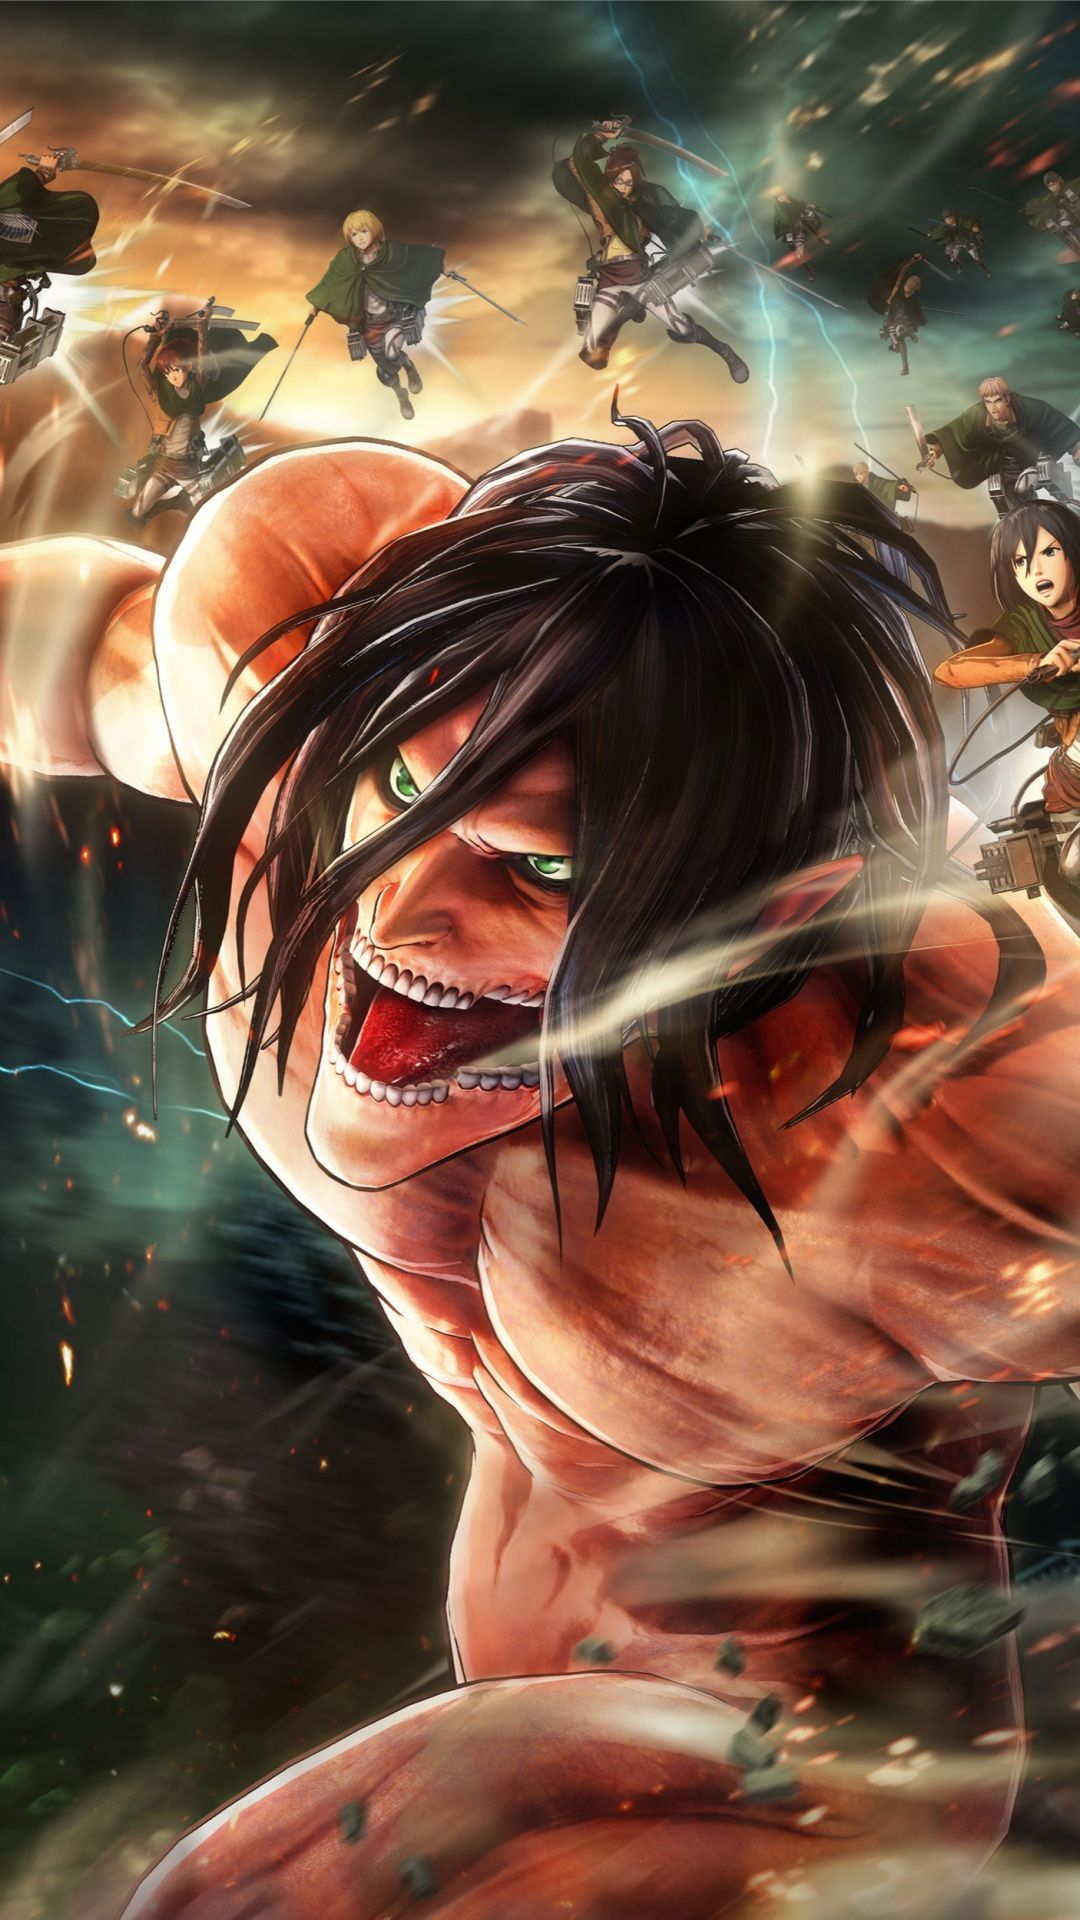 Attack on Titan Eren Jaeger. Attack on Titan